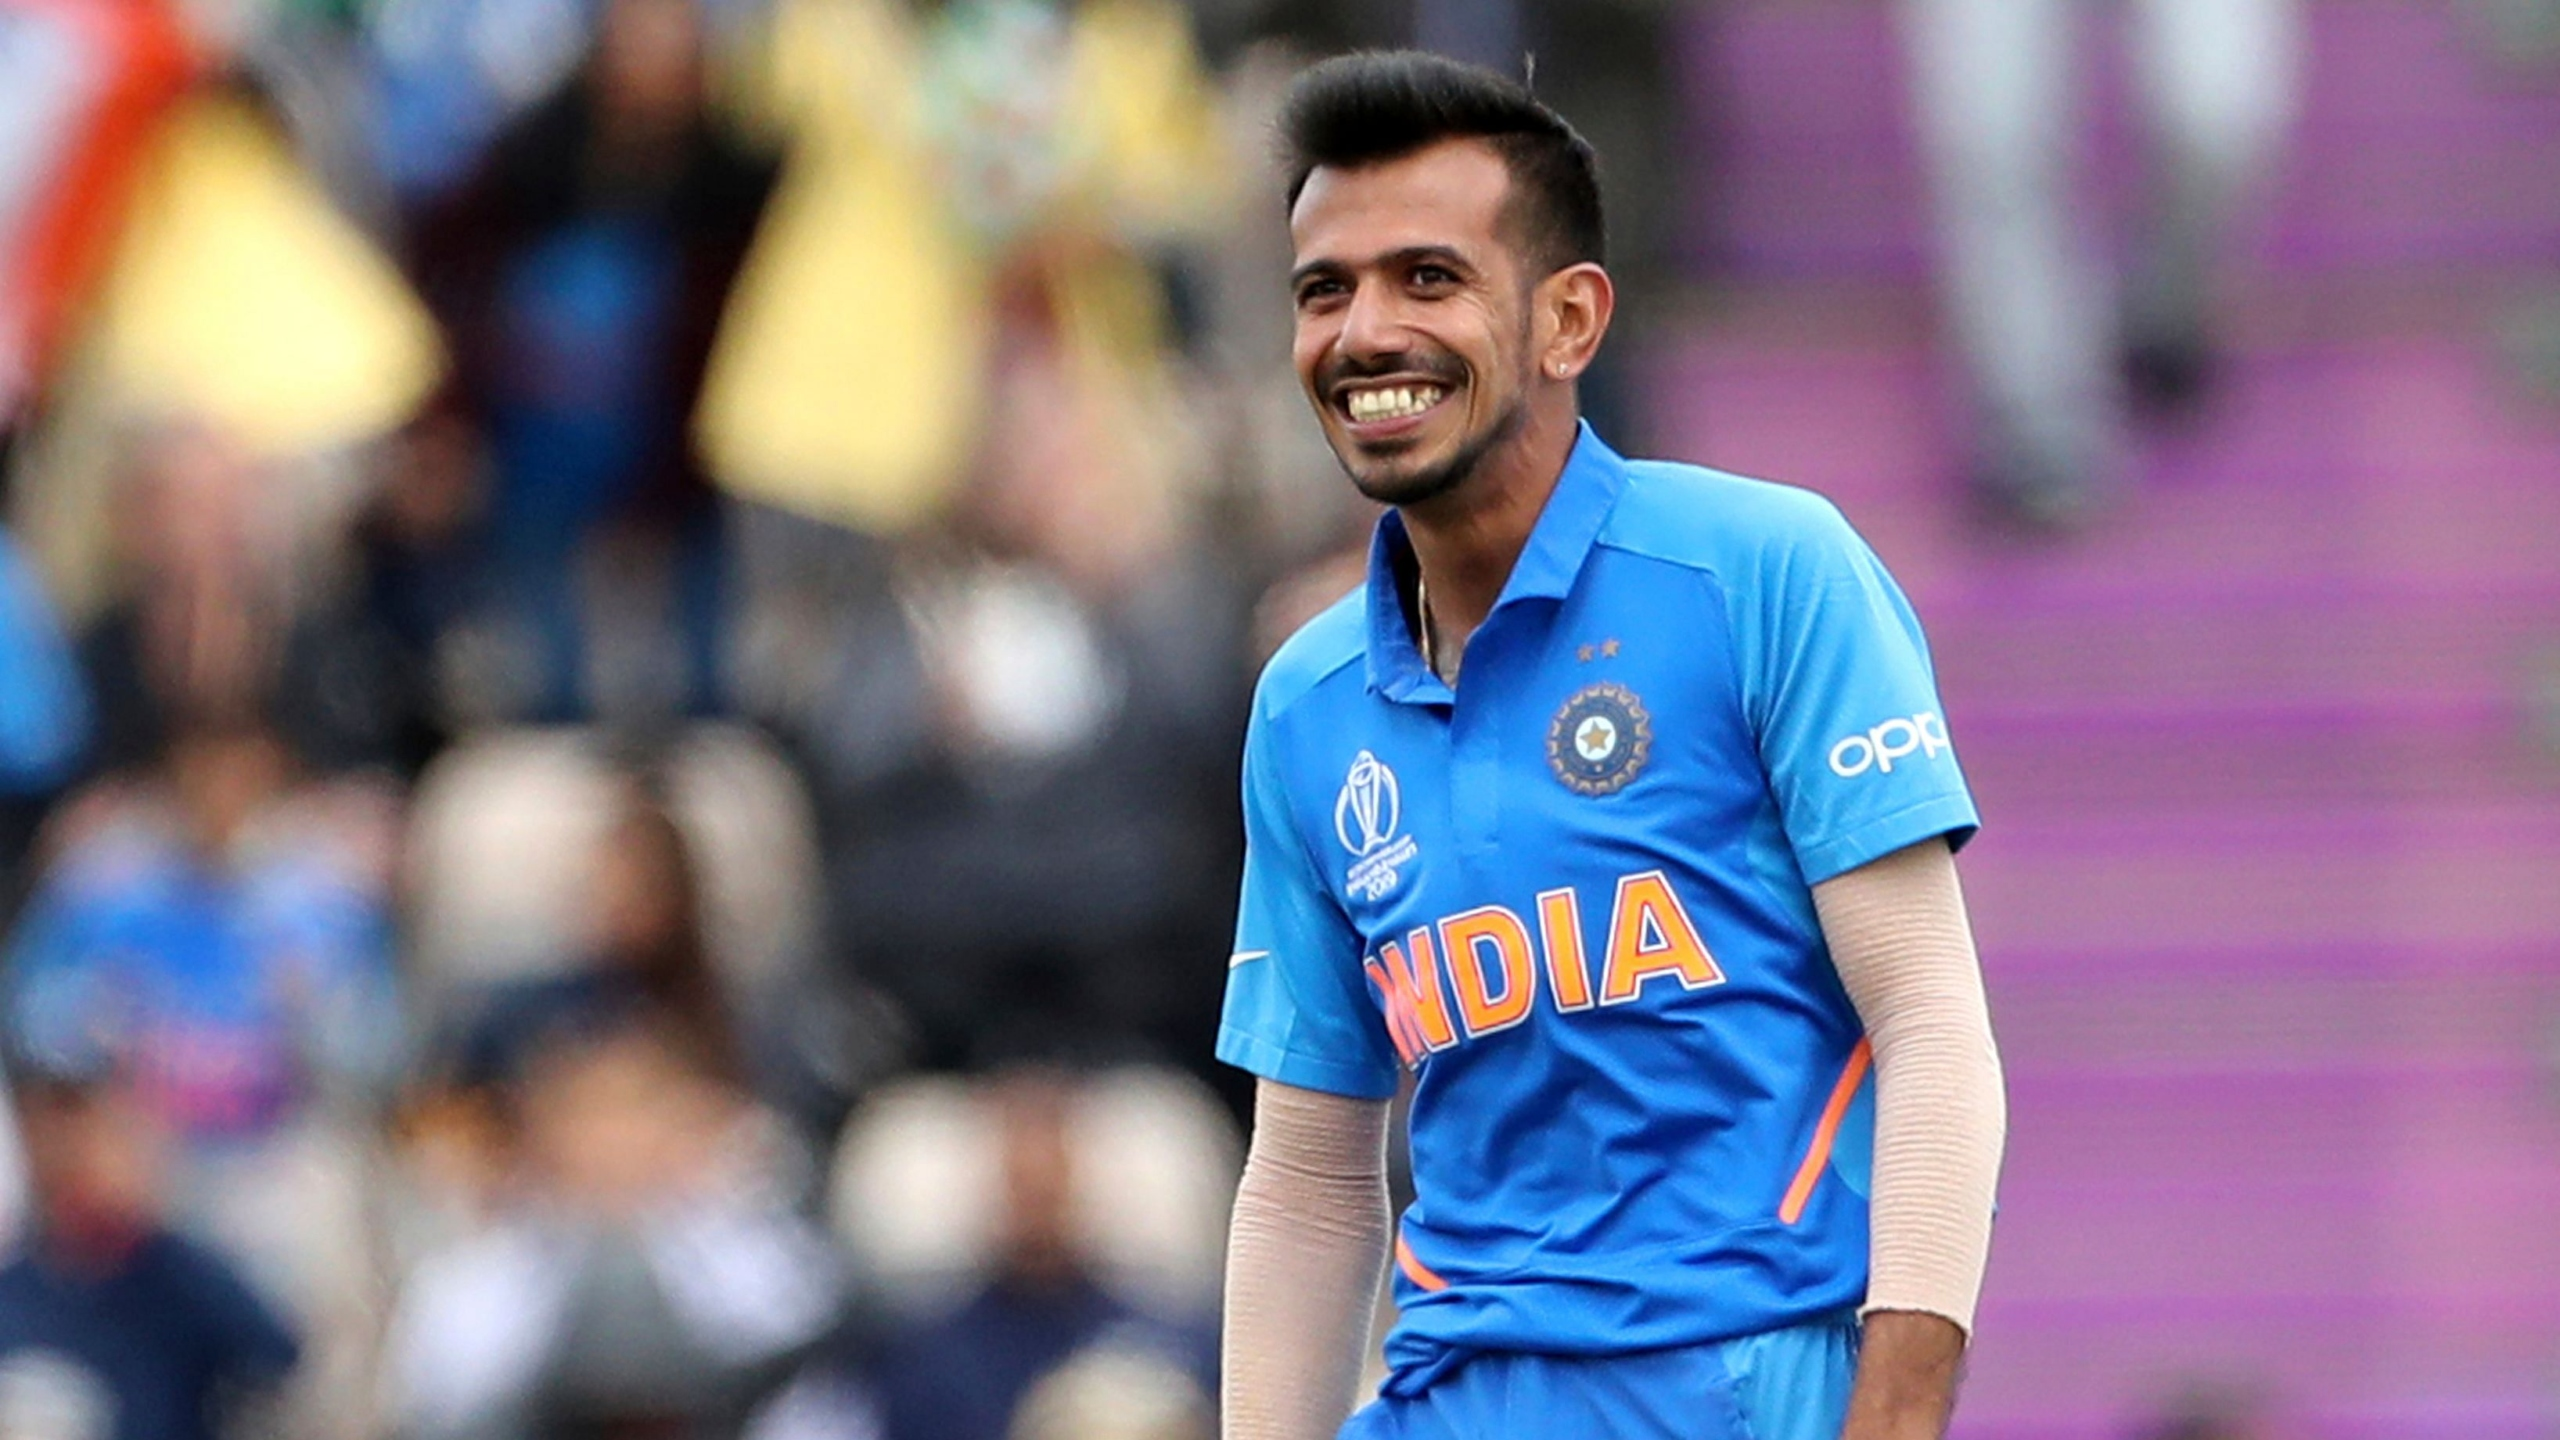 Yuzvendra Chahal: Better to resume cricket with IPL